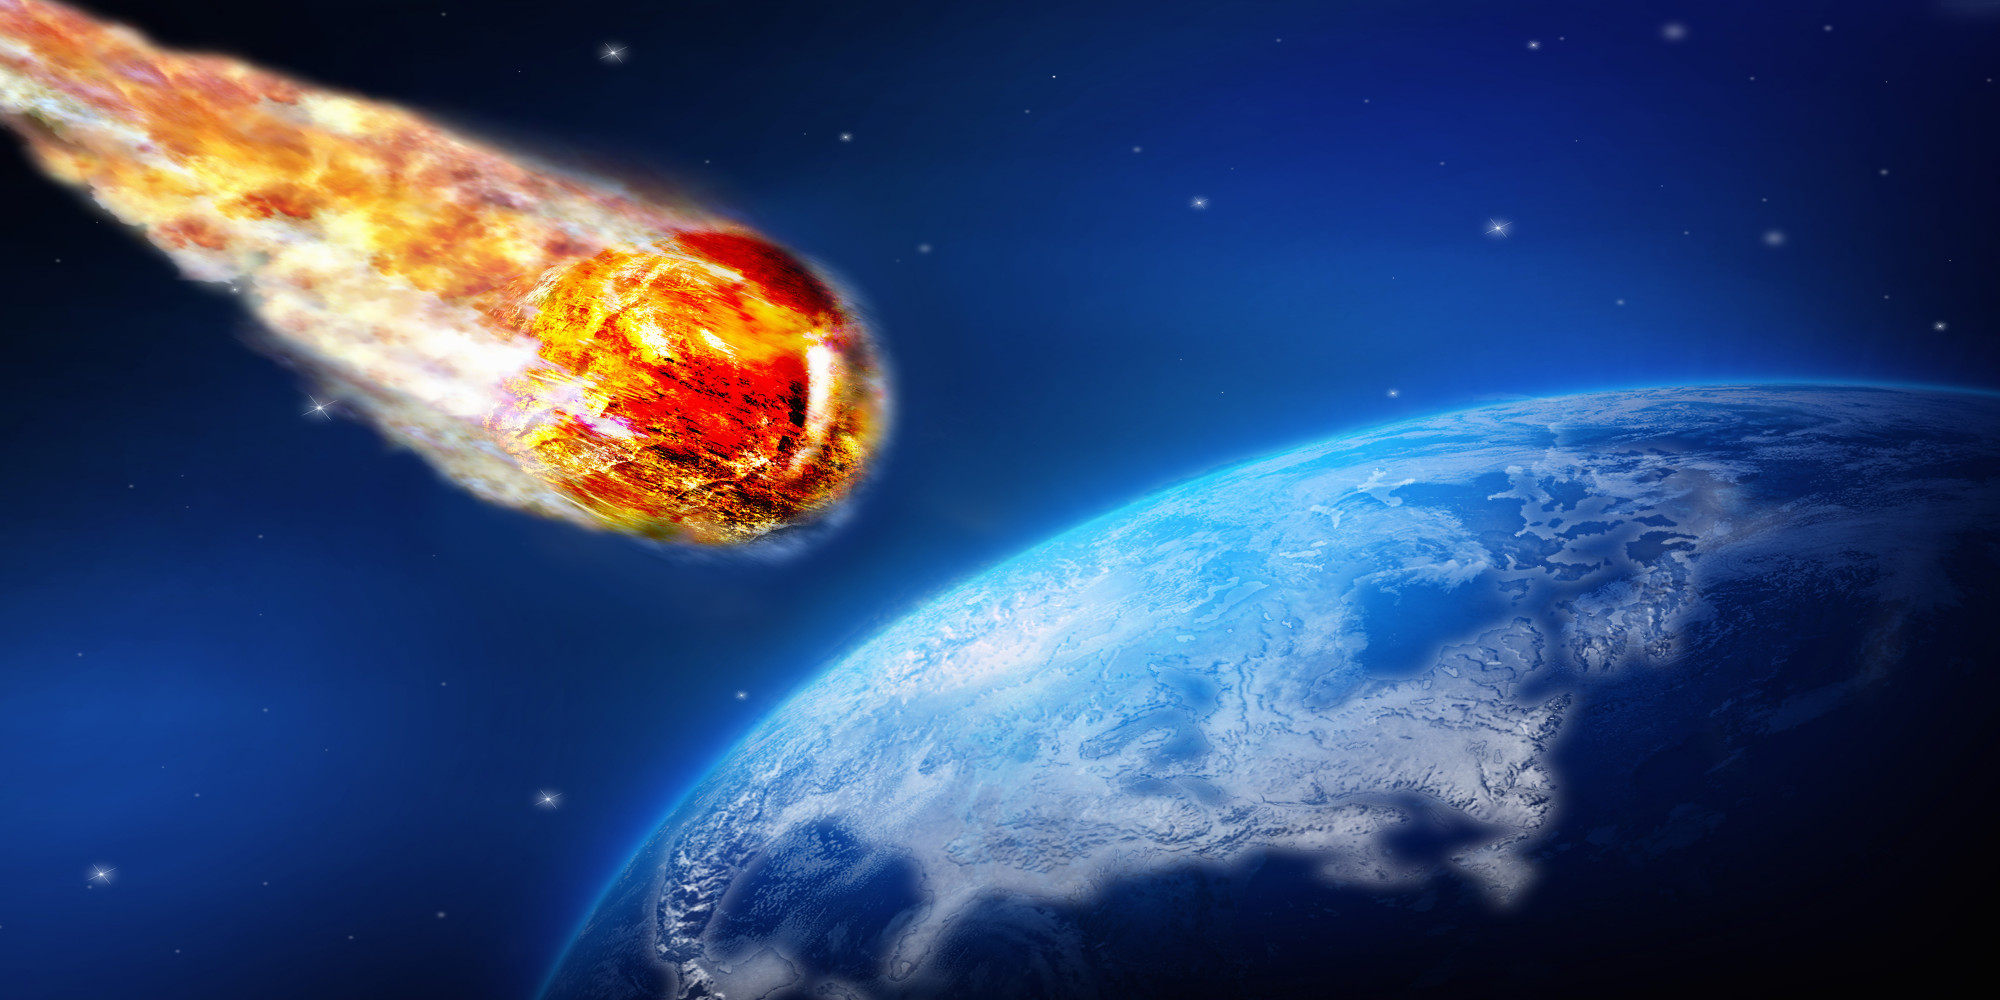 meteorites a threat to civilization Killer space rocks  astronomers are struggling to contain the threat of a civilization-ending galactic visitor  an 85-pound meteorite punches through the roof of a house in sylacauga.